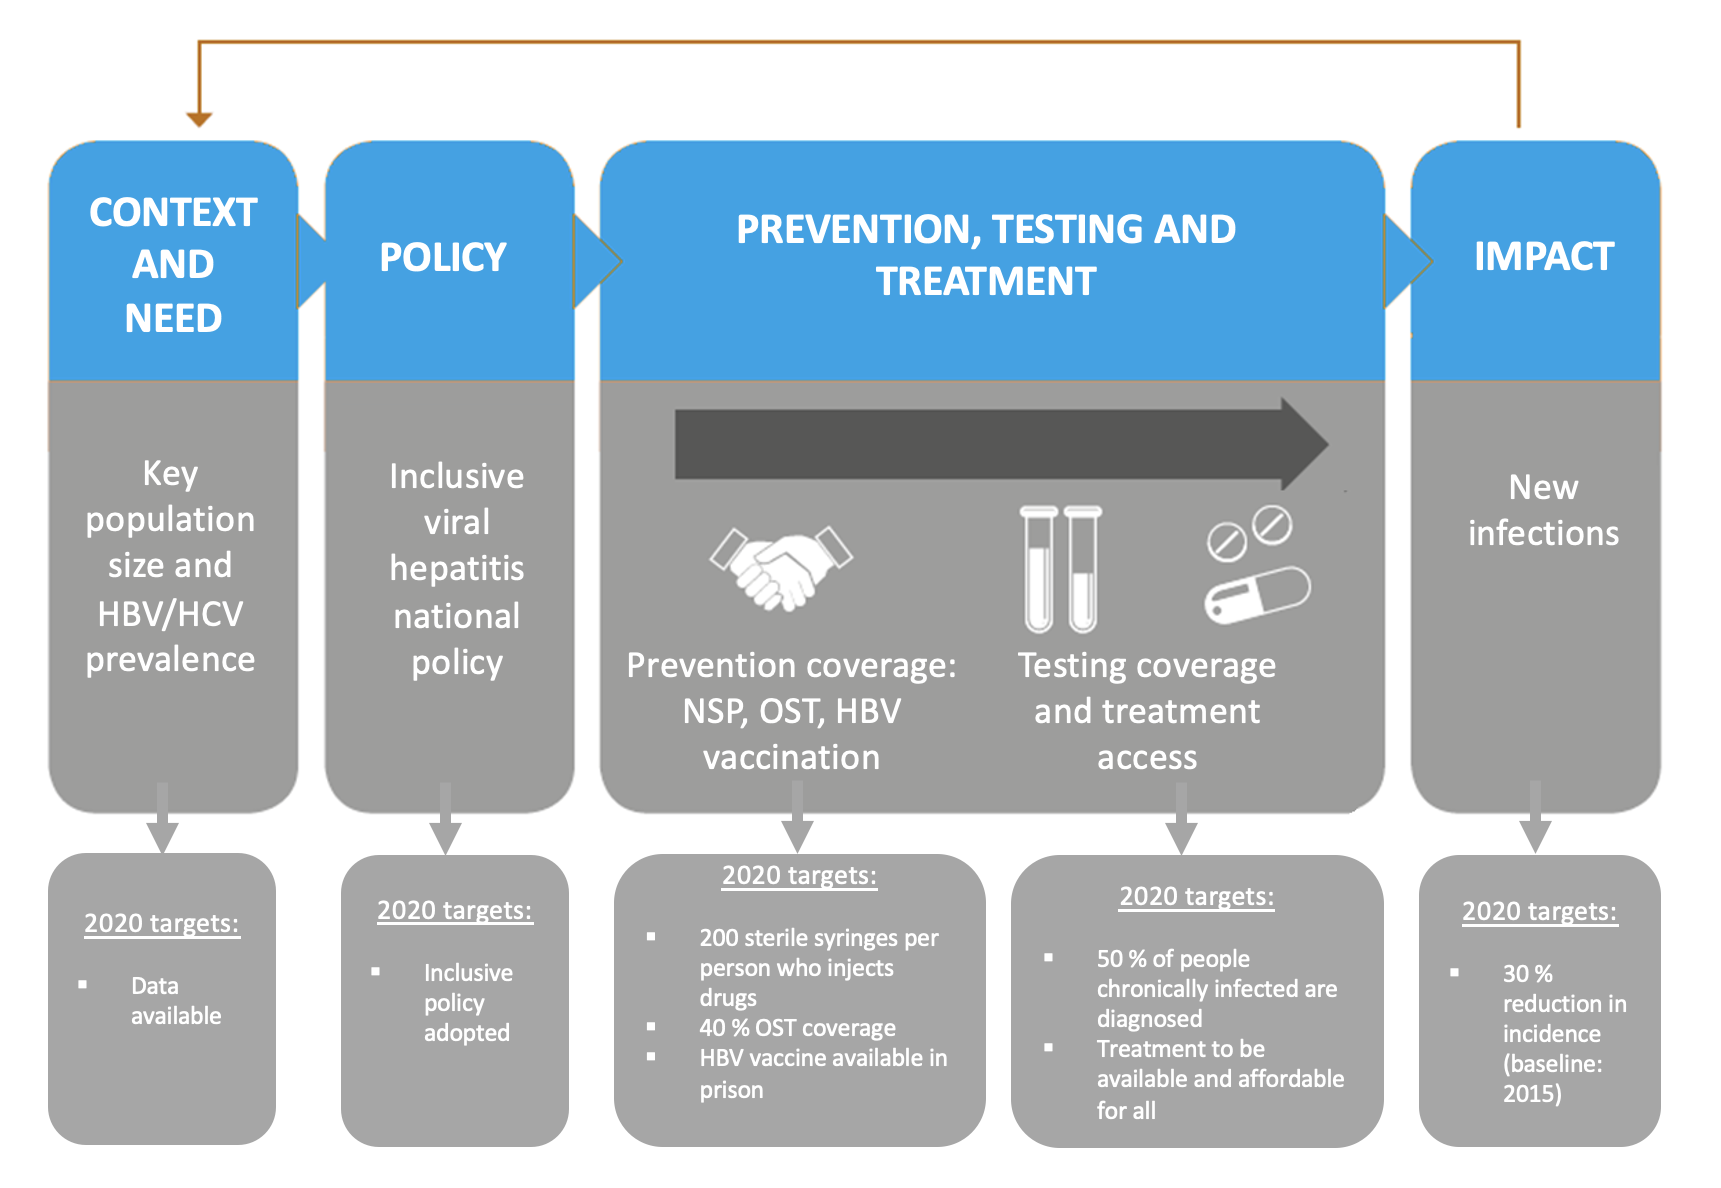 HCV elimination iniatiative for people who inject drugs. Main building blocks:1.ninformation on the situation. 2. Is there an inclusive policy? 3. Prevention including vaccination. 4. Testing and treatment. 5. What is the impact?